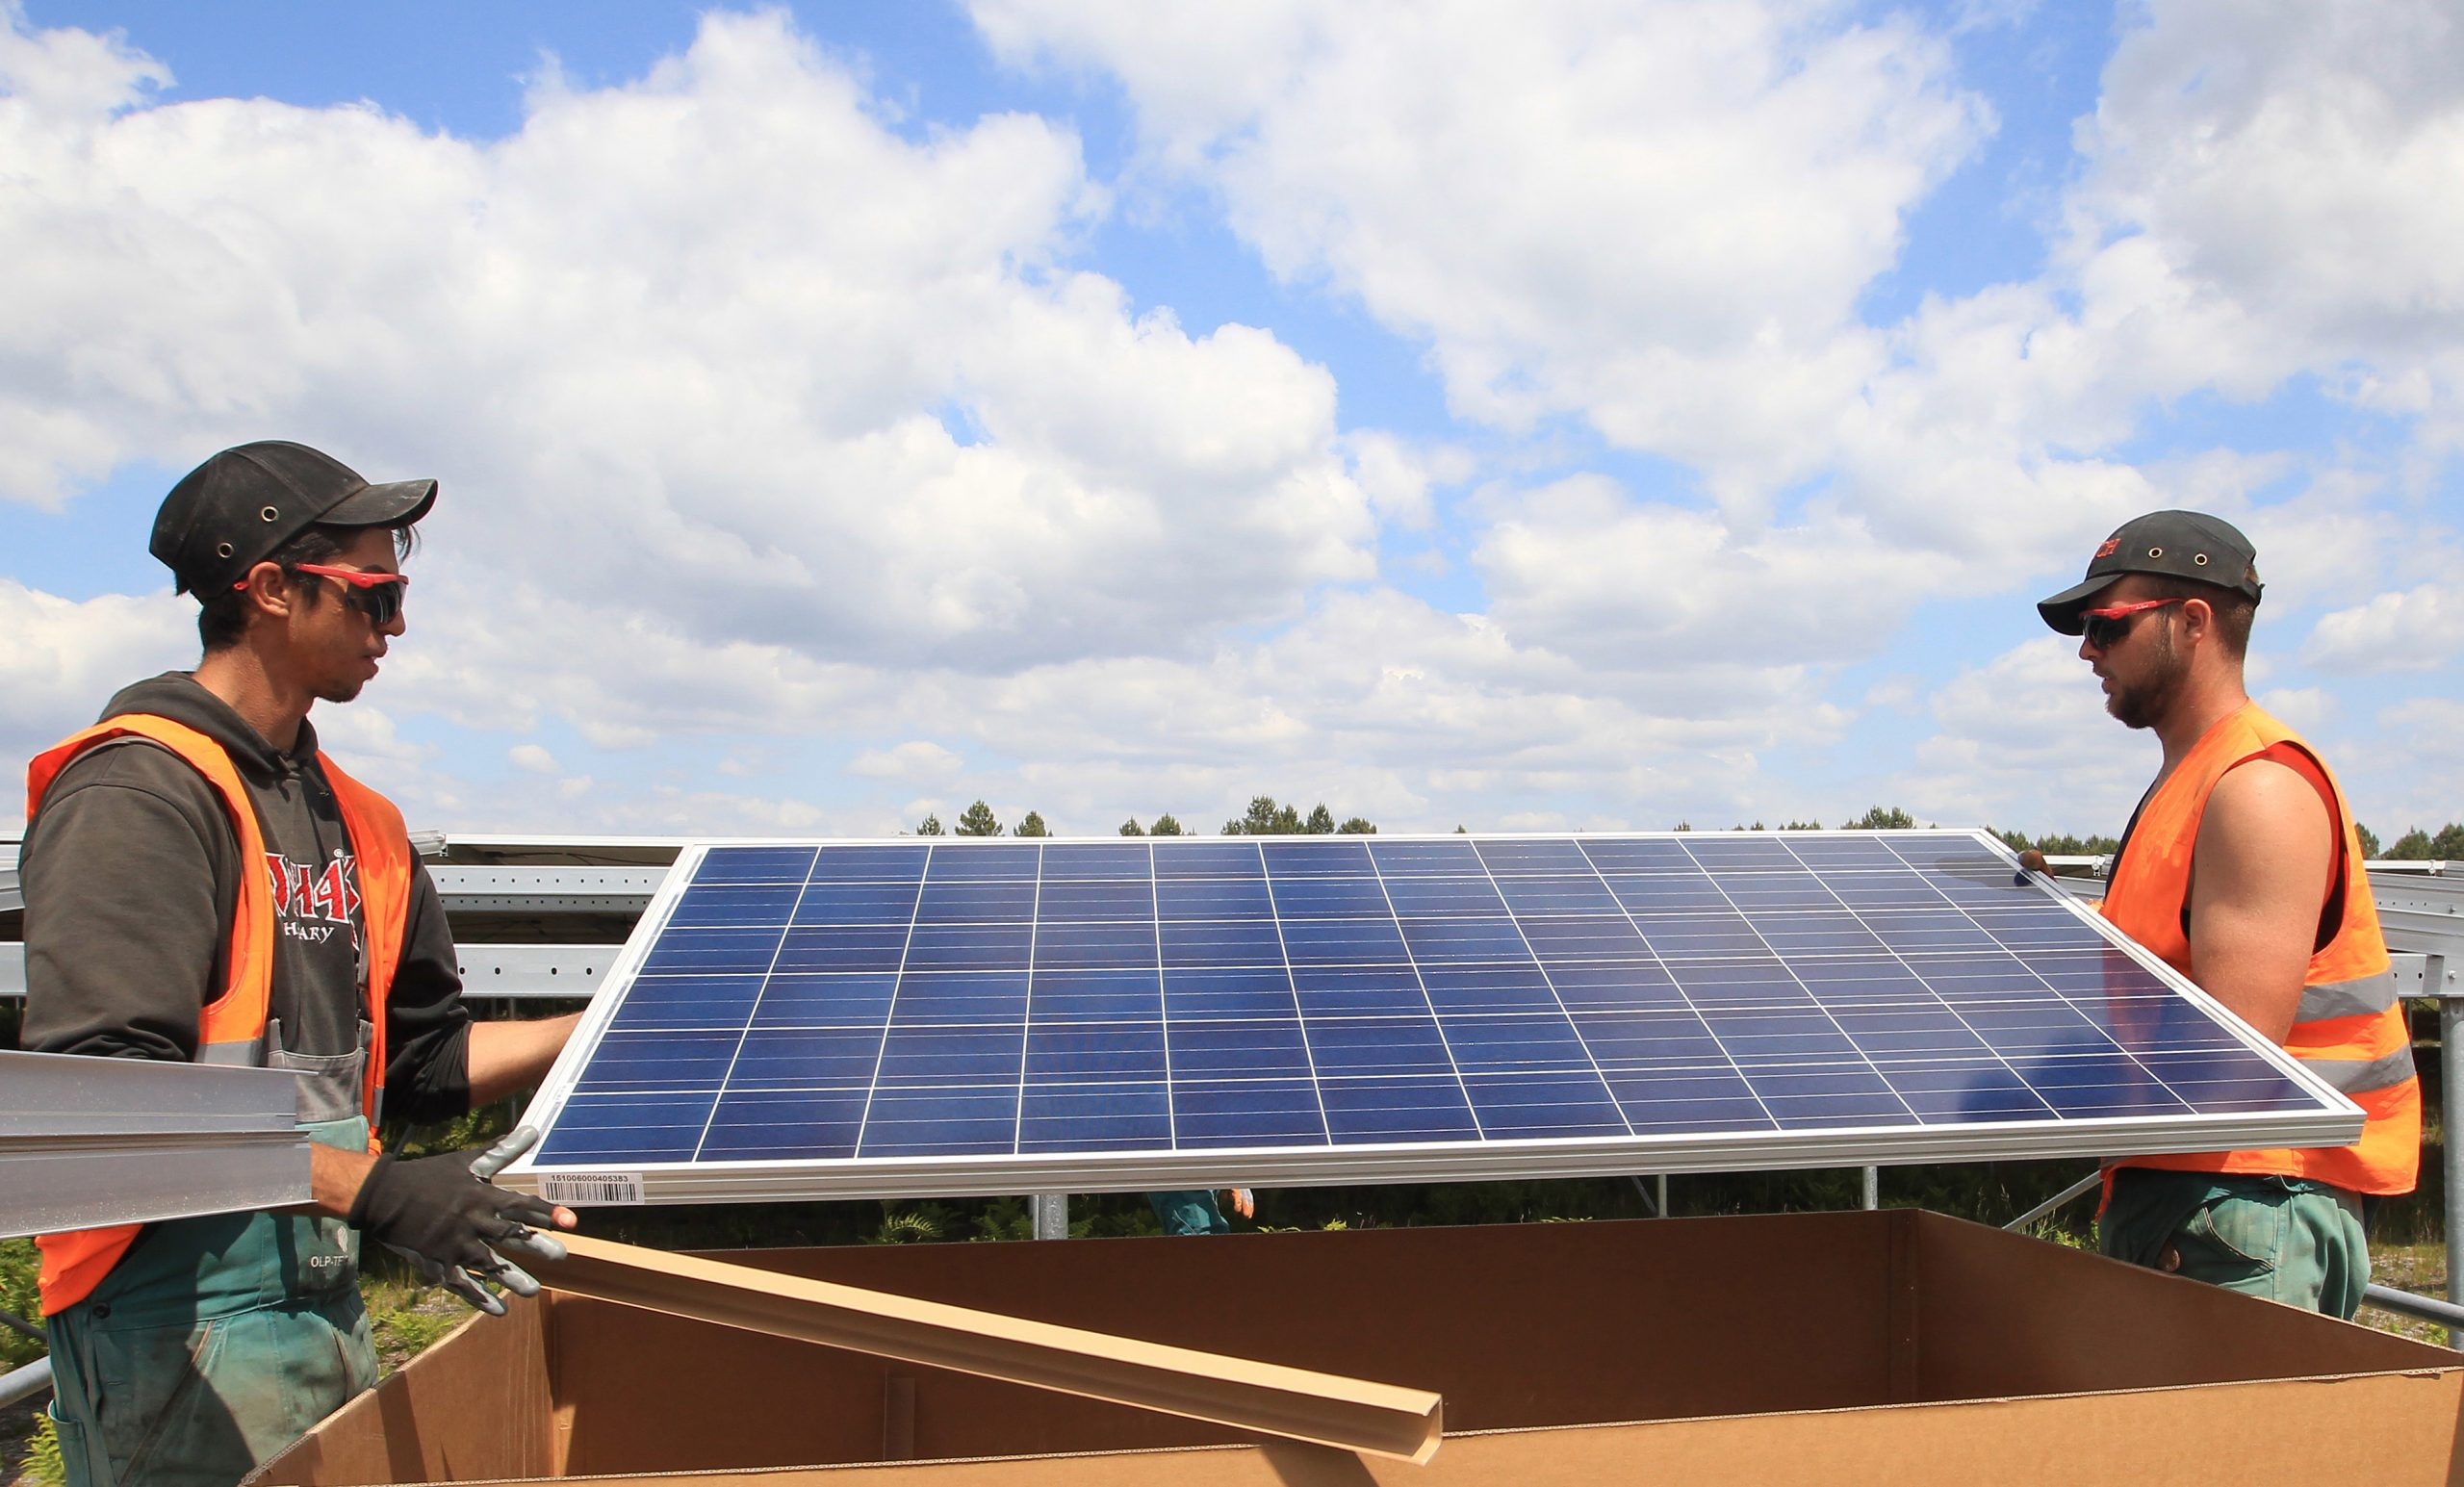 Workers install solar panels at the Constantine photovoltaic power station in Cestas, near Bordeaux, southwestern France, Friday, May 22, 2015. Once operational, the Constantine plant is set to be the largest ground-mounted photovoltaic installation across Europe. (AP Photo/Bob Edme)